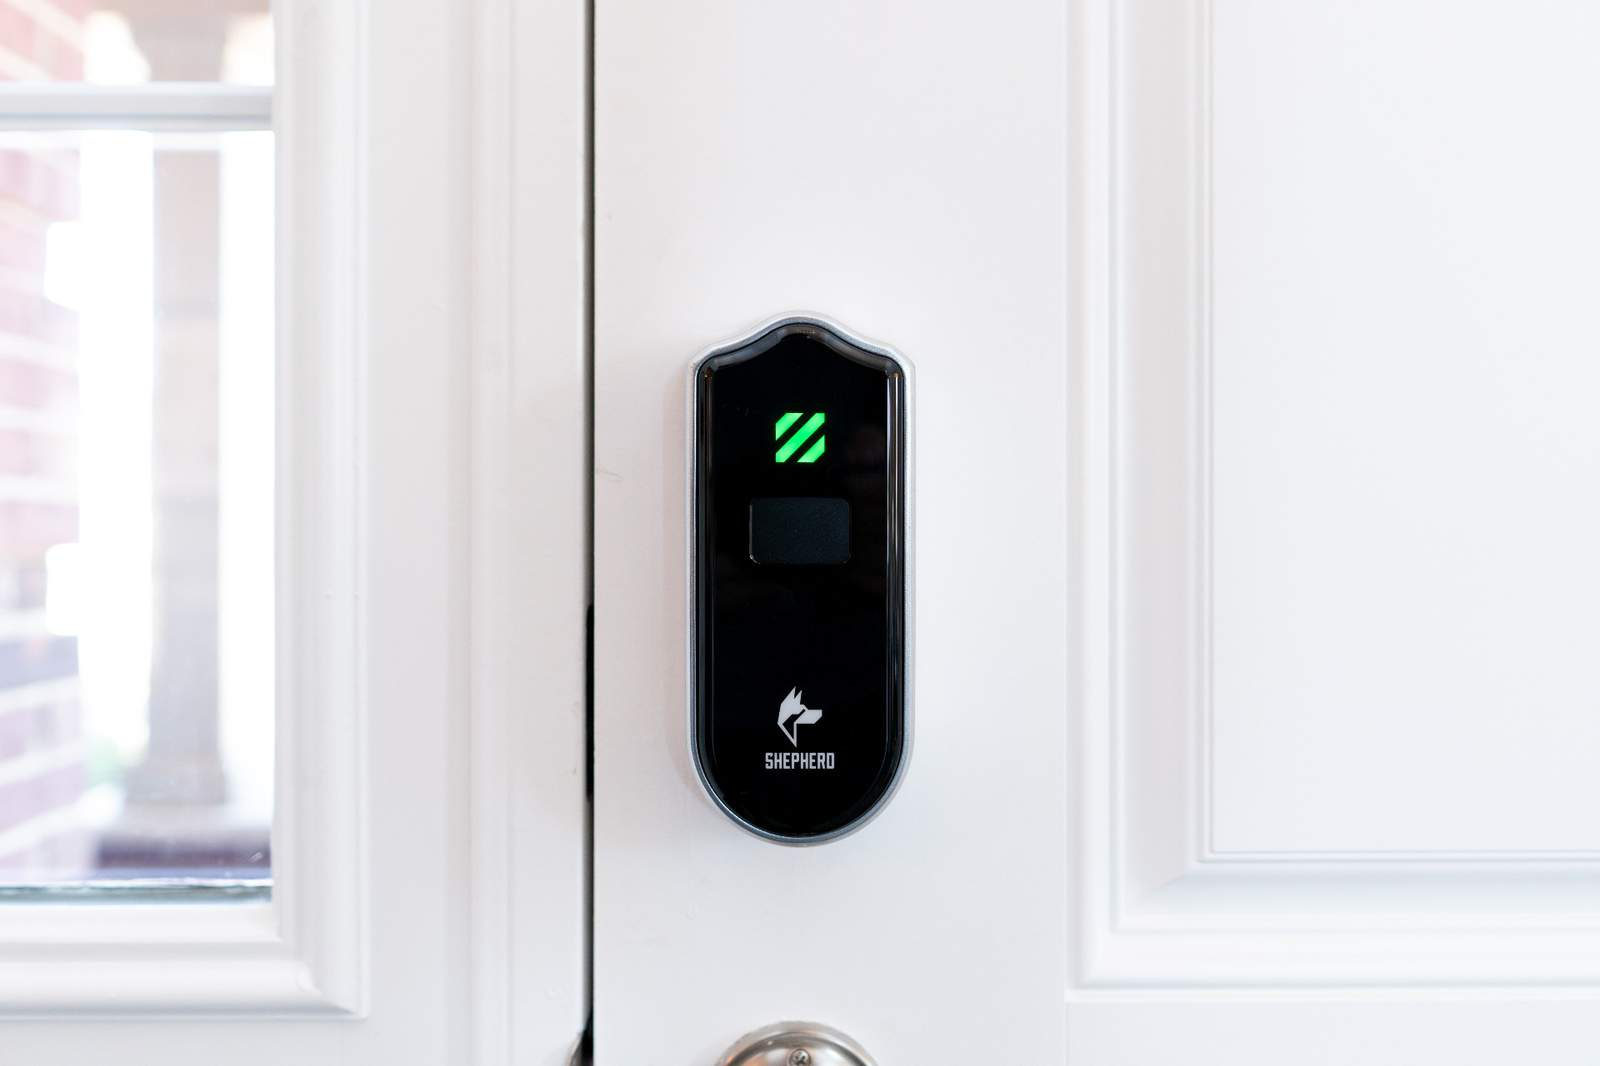 Ann Arbor tech startup reimagines keyless home entry and smart access - WDIV ClickOnDetroit